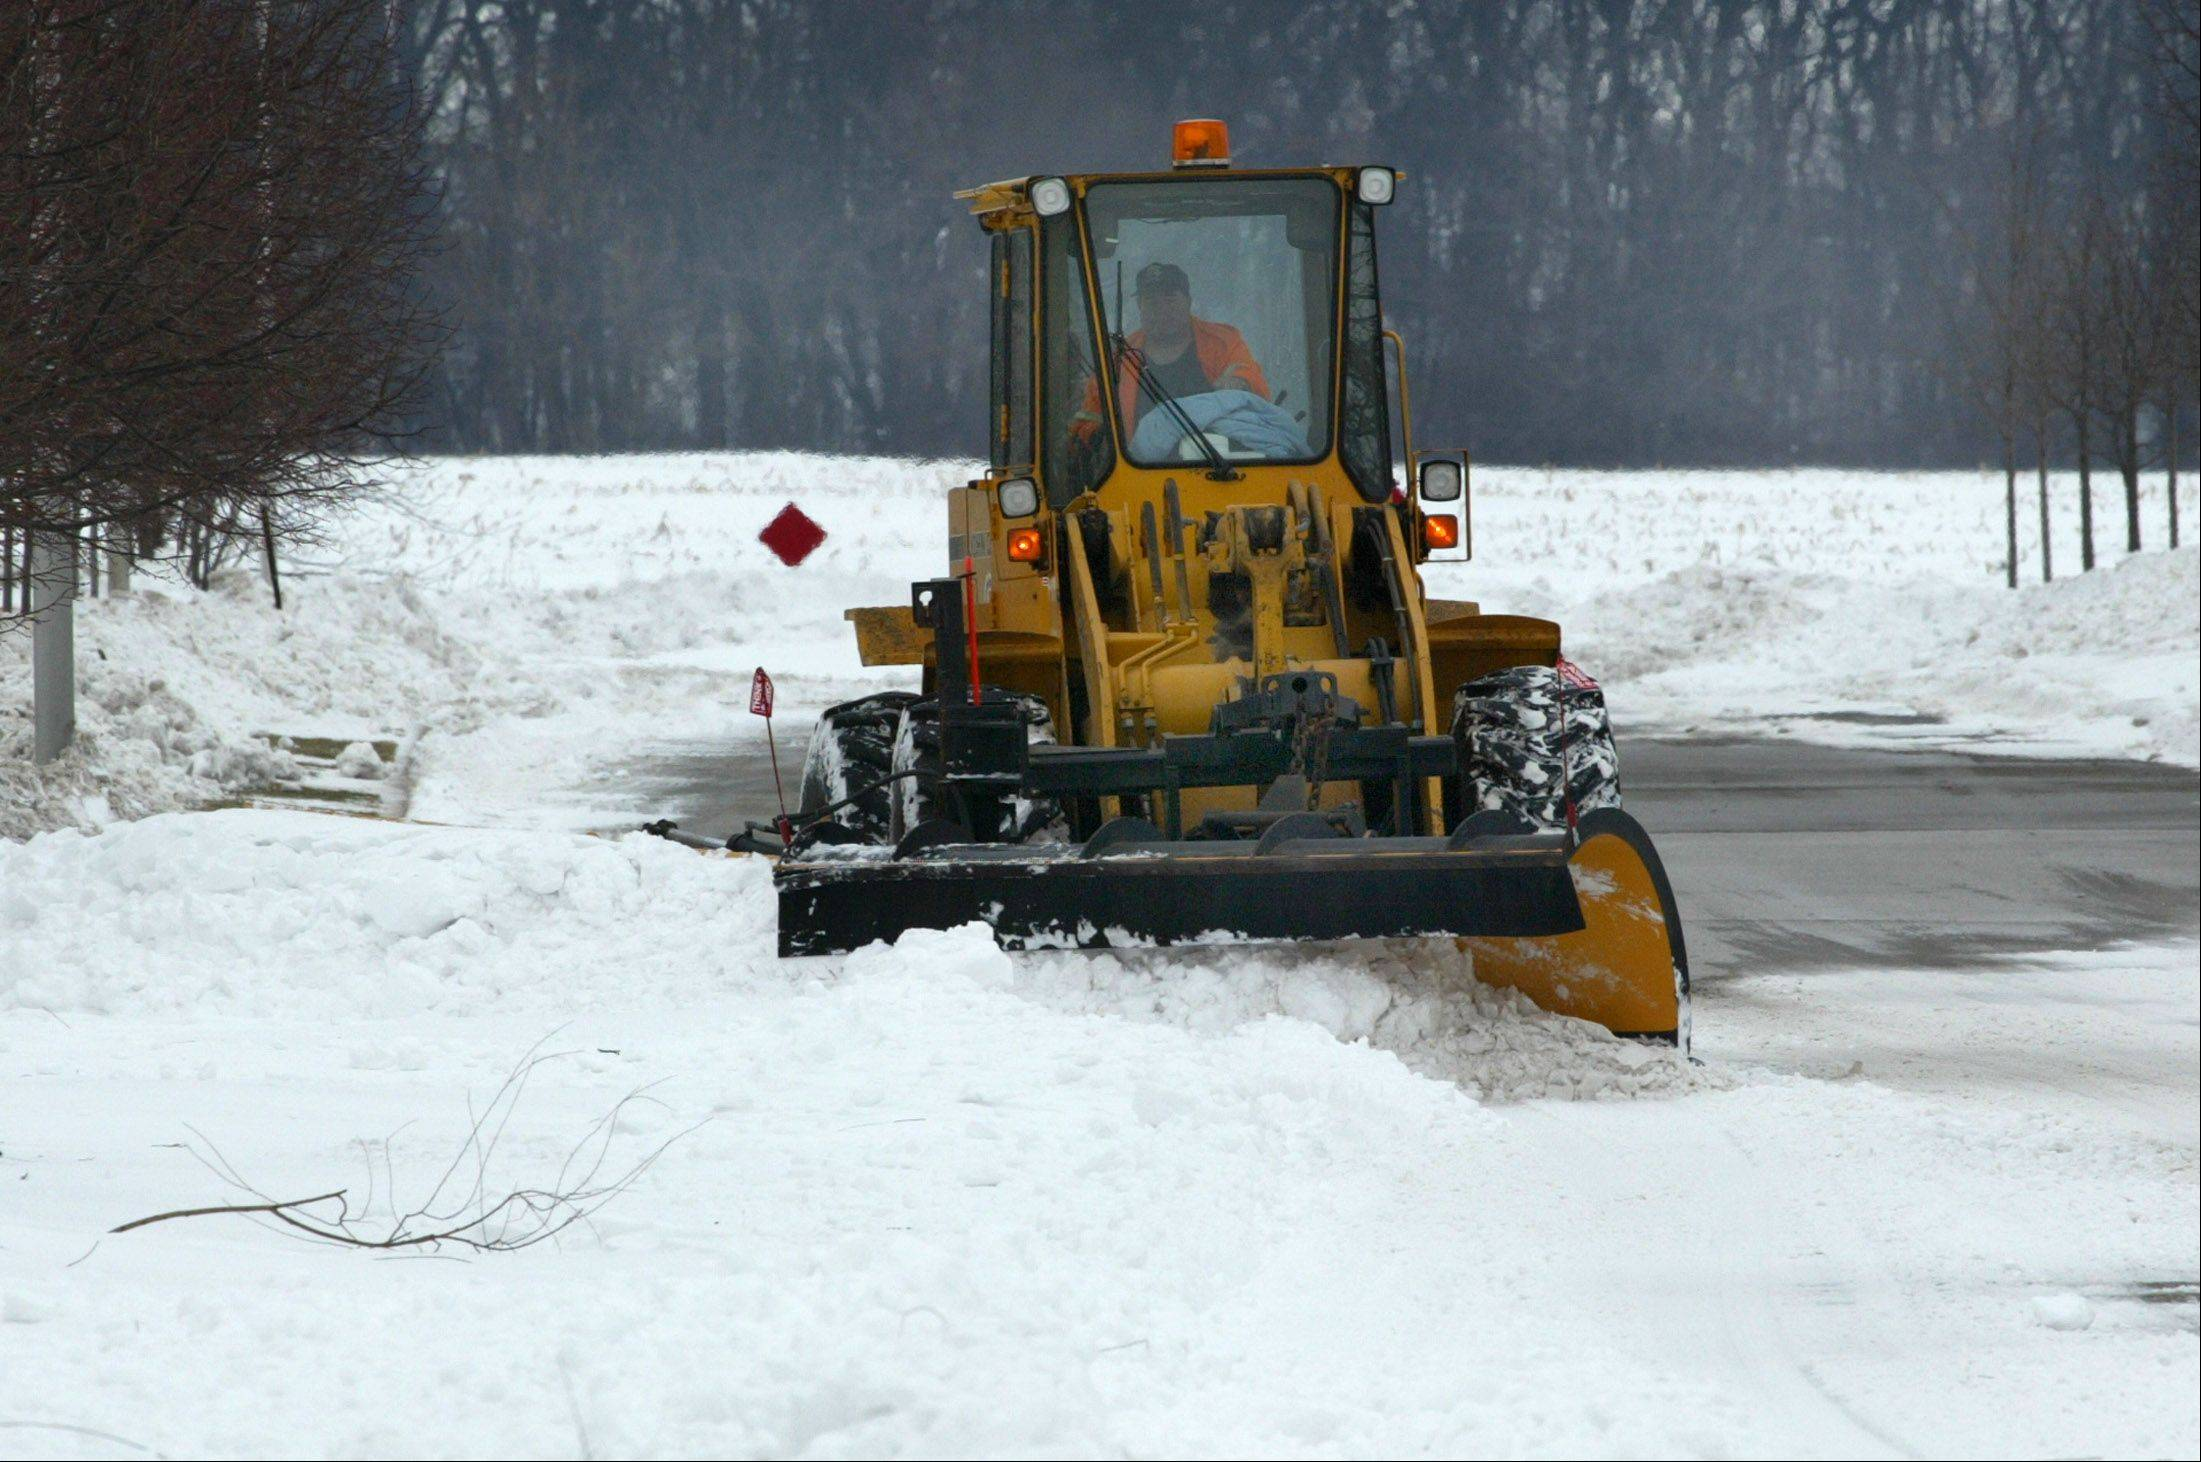 Elgin's budget and financial planning task force is recommending Elgin cut back on snow removal and leaf pickup.